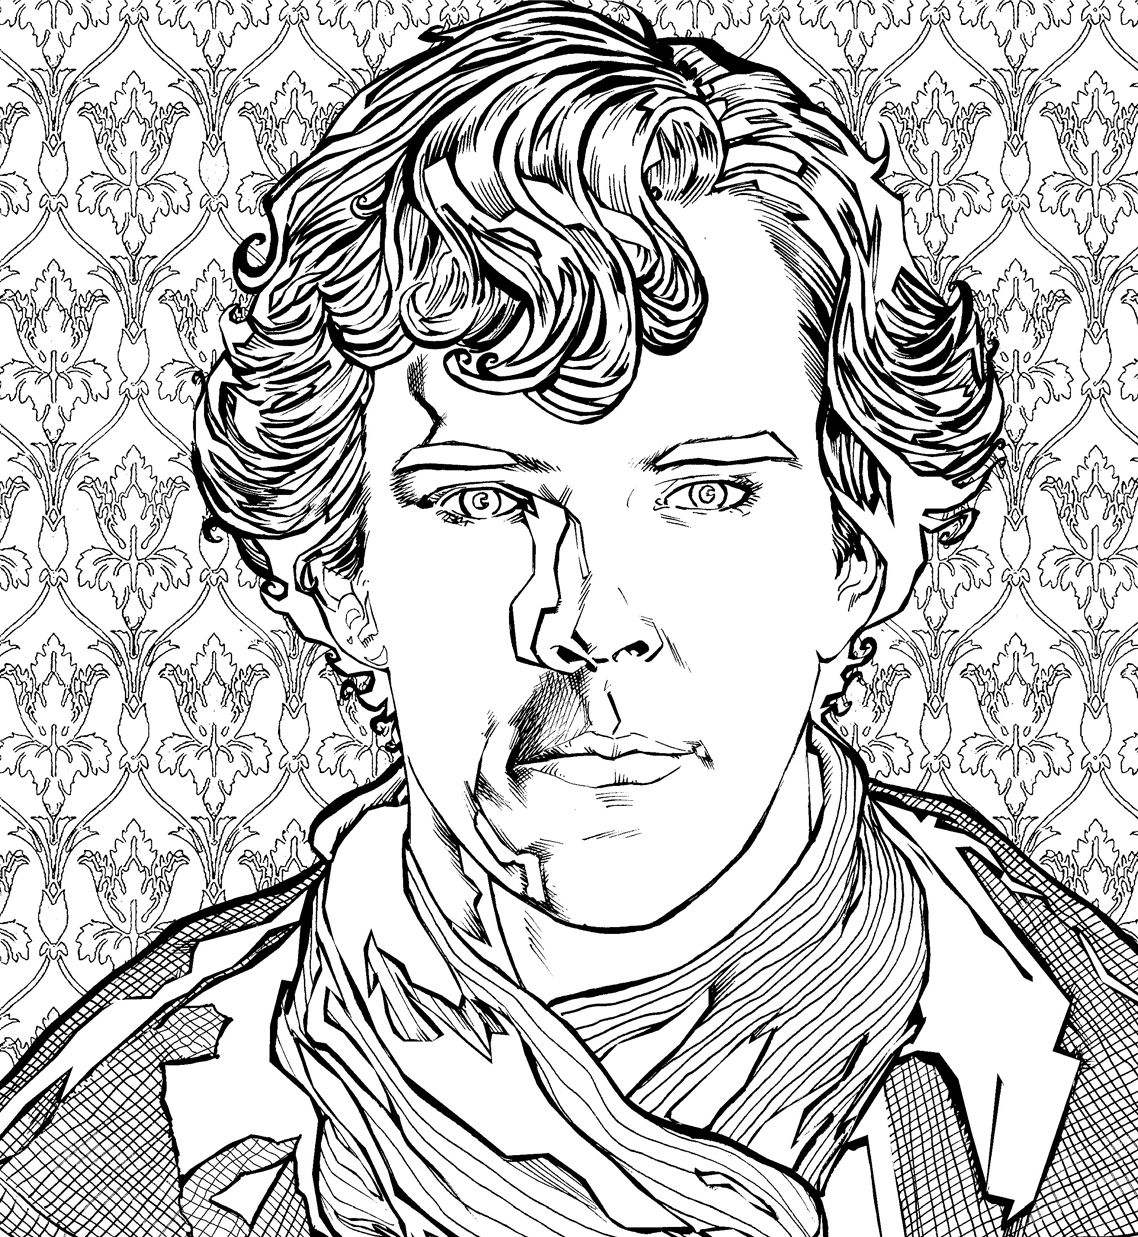 Sherlock The Mind Palace Free Colouring Downloads Whsmith Blog Coloring Download Free Coloring Pages Free Coloring [ 1237 x 1138 Pixel ]